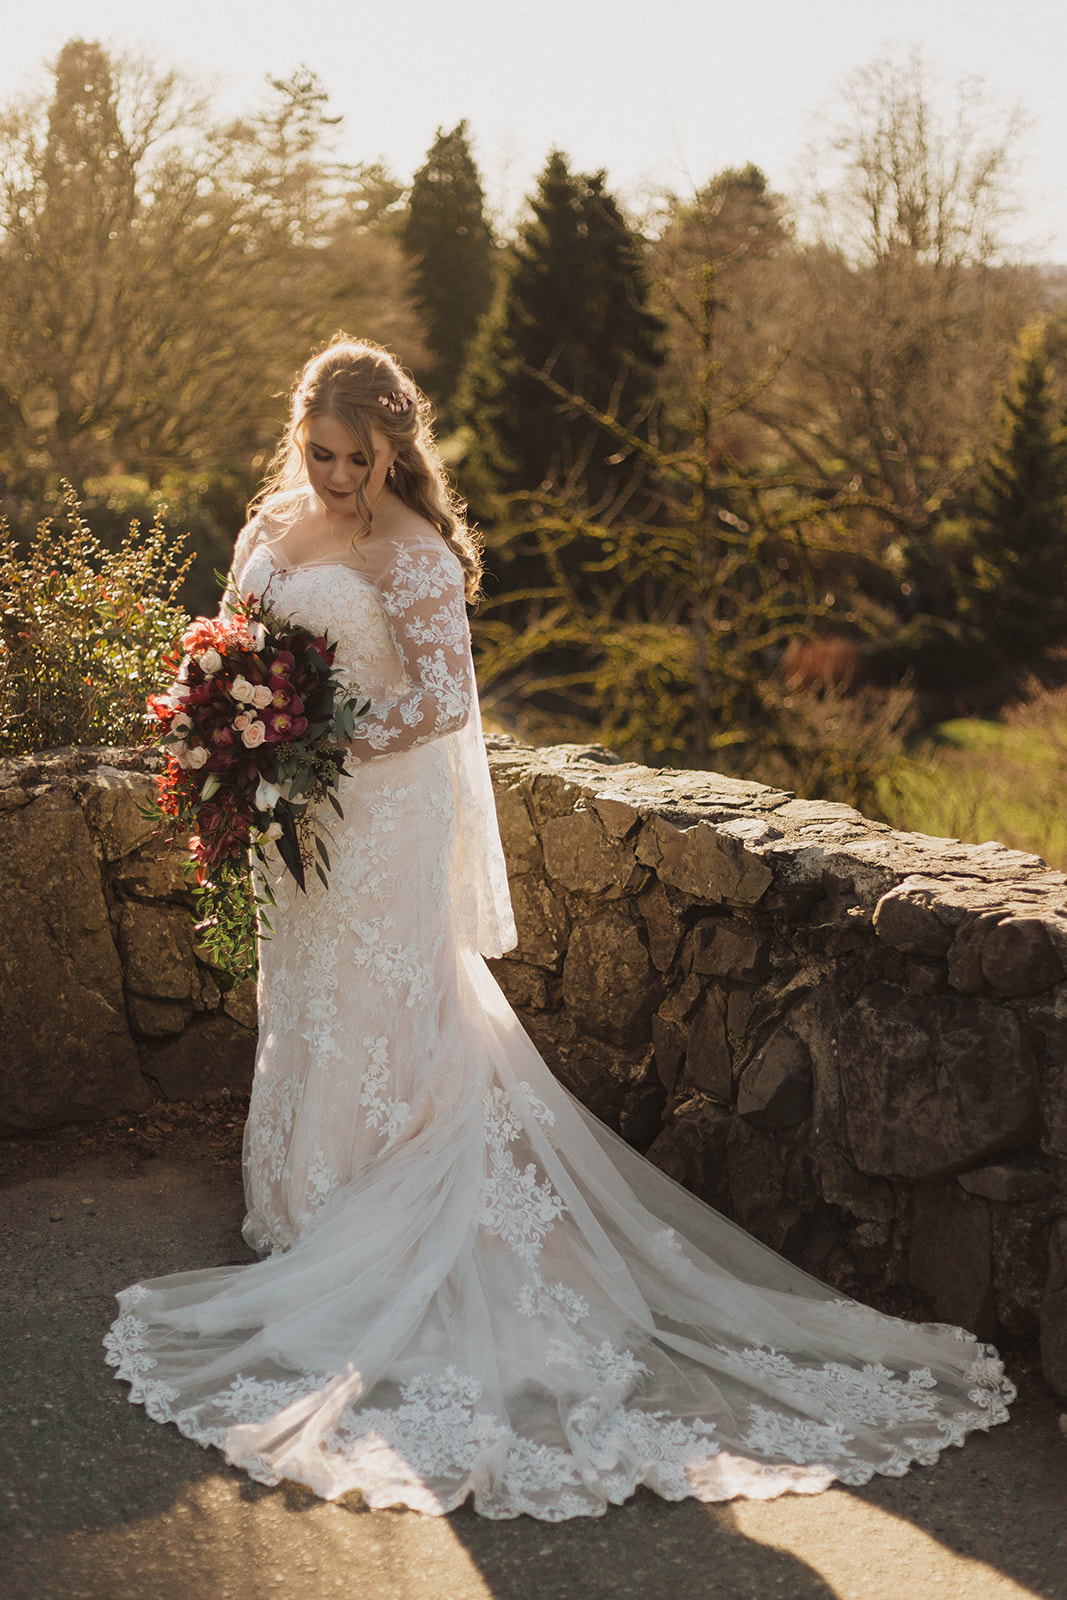 Bride with cascading bouquet and lace gown by Blush Victoria by Kacie McColm PHotography